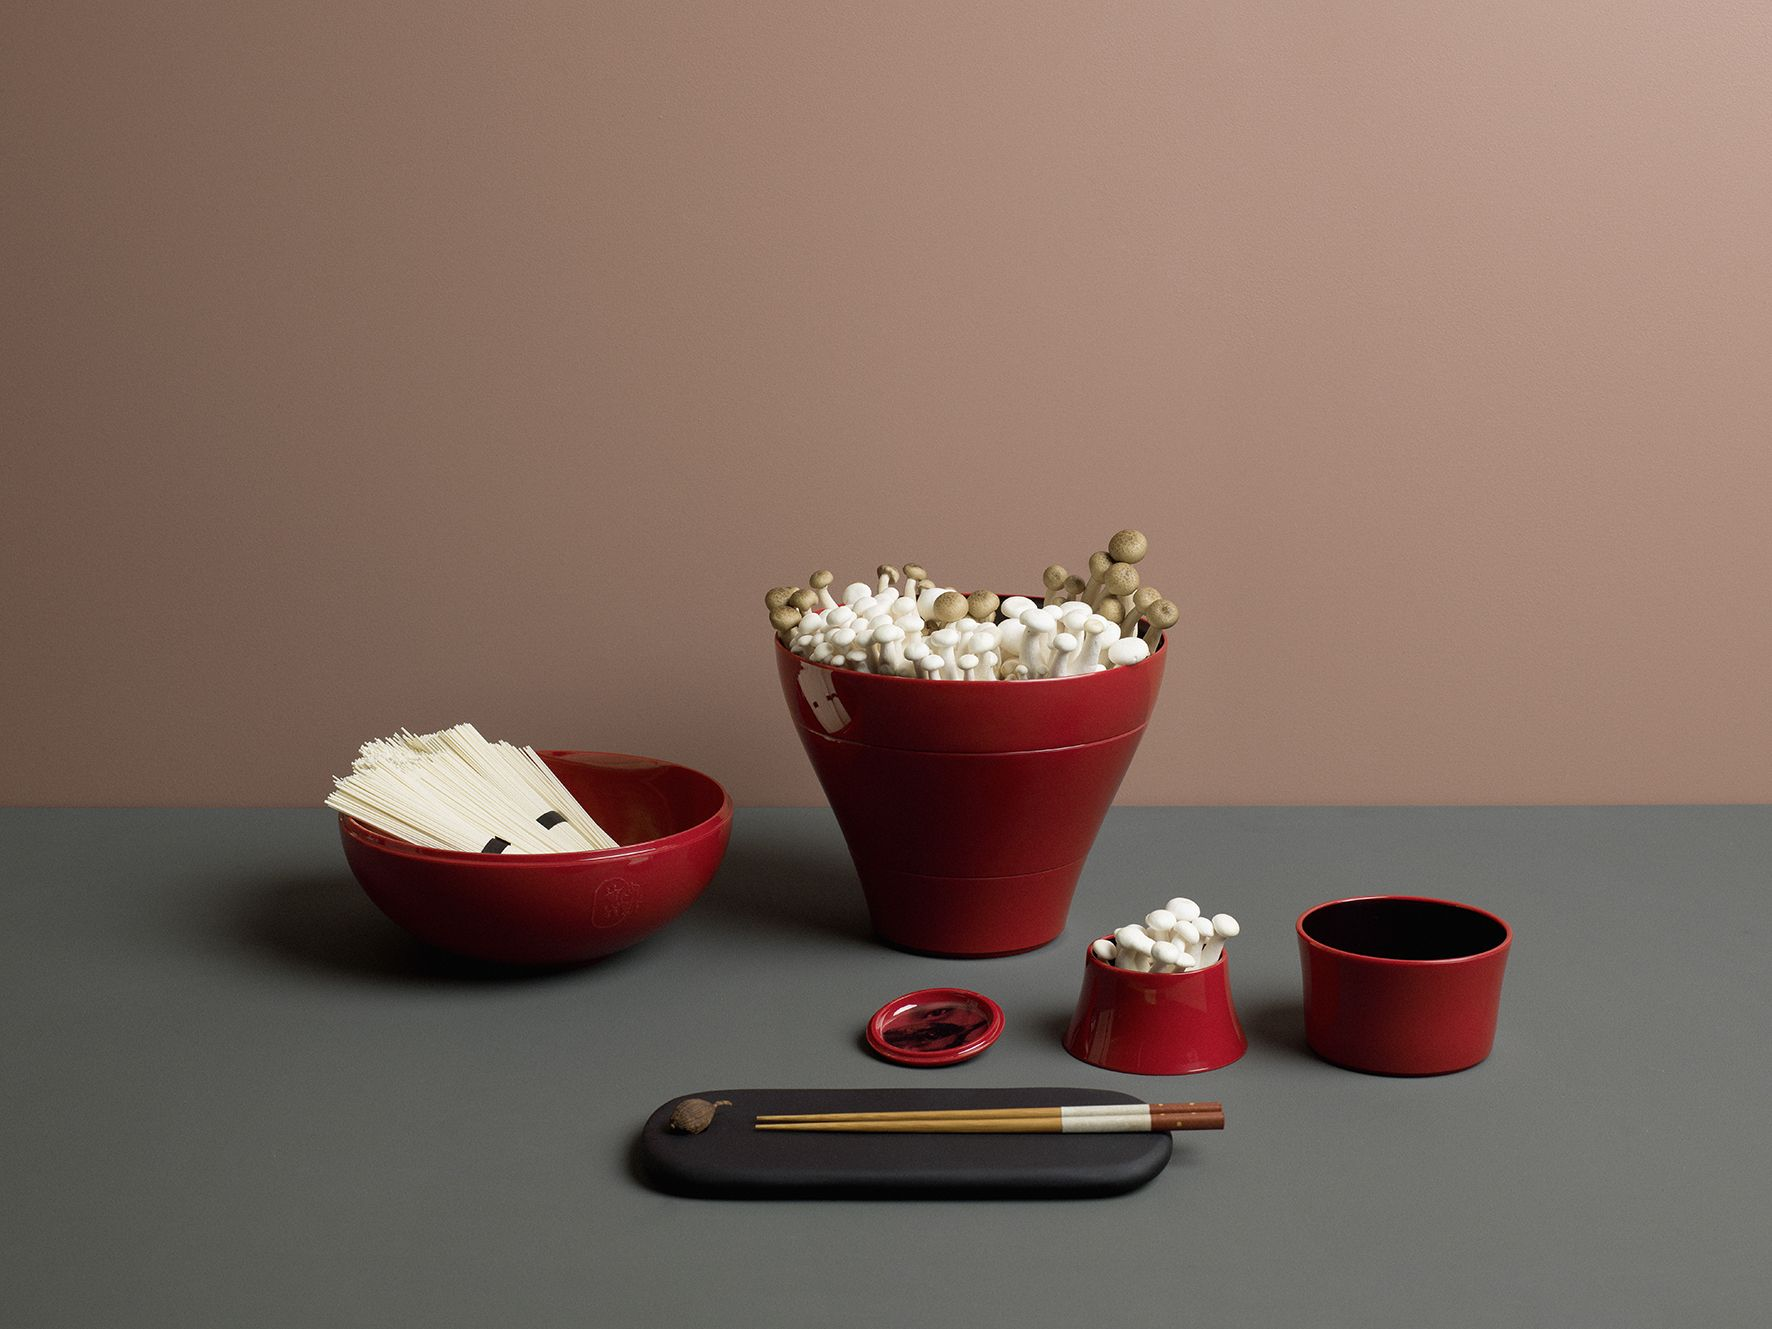 Ming Red by ibride #design #kitchen #home #vase #decoration ...